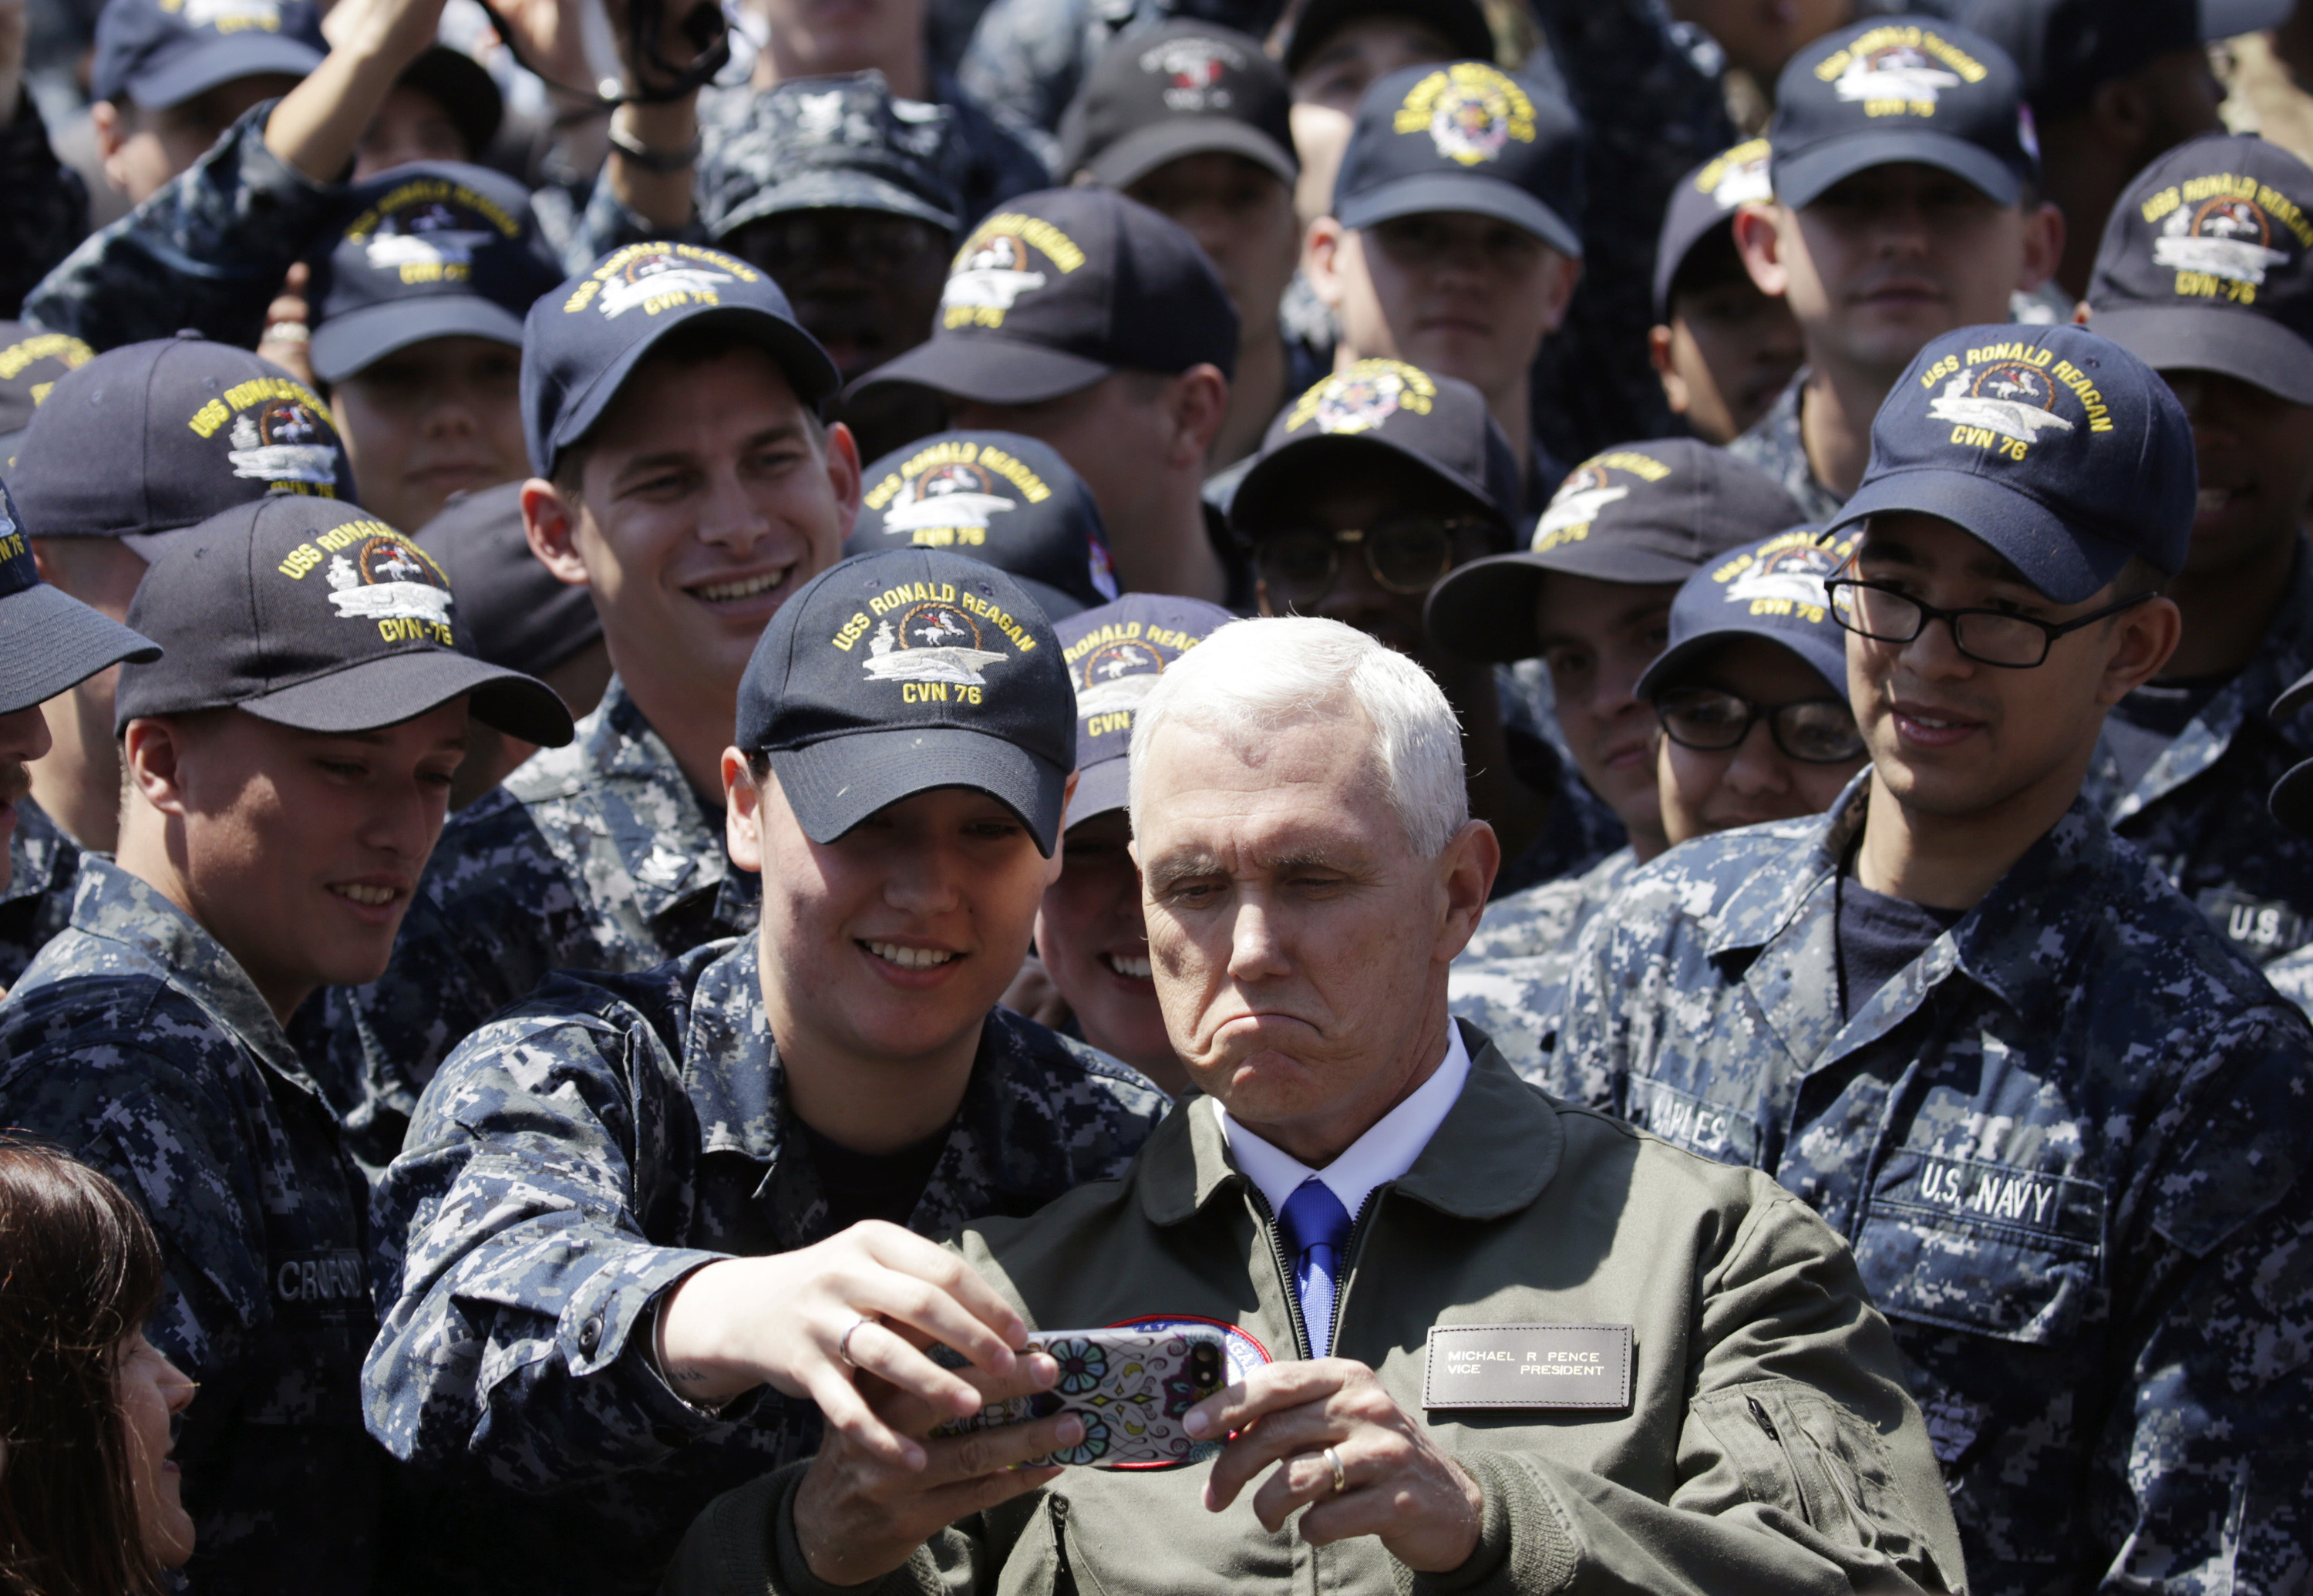 U.S. Vice President Mike Pence, center right at bottom, takes a selfie with U.S. servicemen on the flight deck of U.S. navy nuclear-powered aircraft carrier USS Ronald Reagan, at the U.S. Navy's Yokosuka base in Yokosuka, south of Tokyo, Wednesday, April 19, 2017. (AP Photo/Eugene Hoshiko)